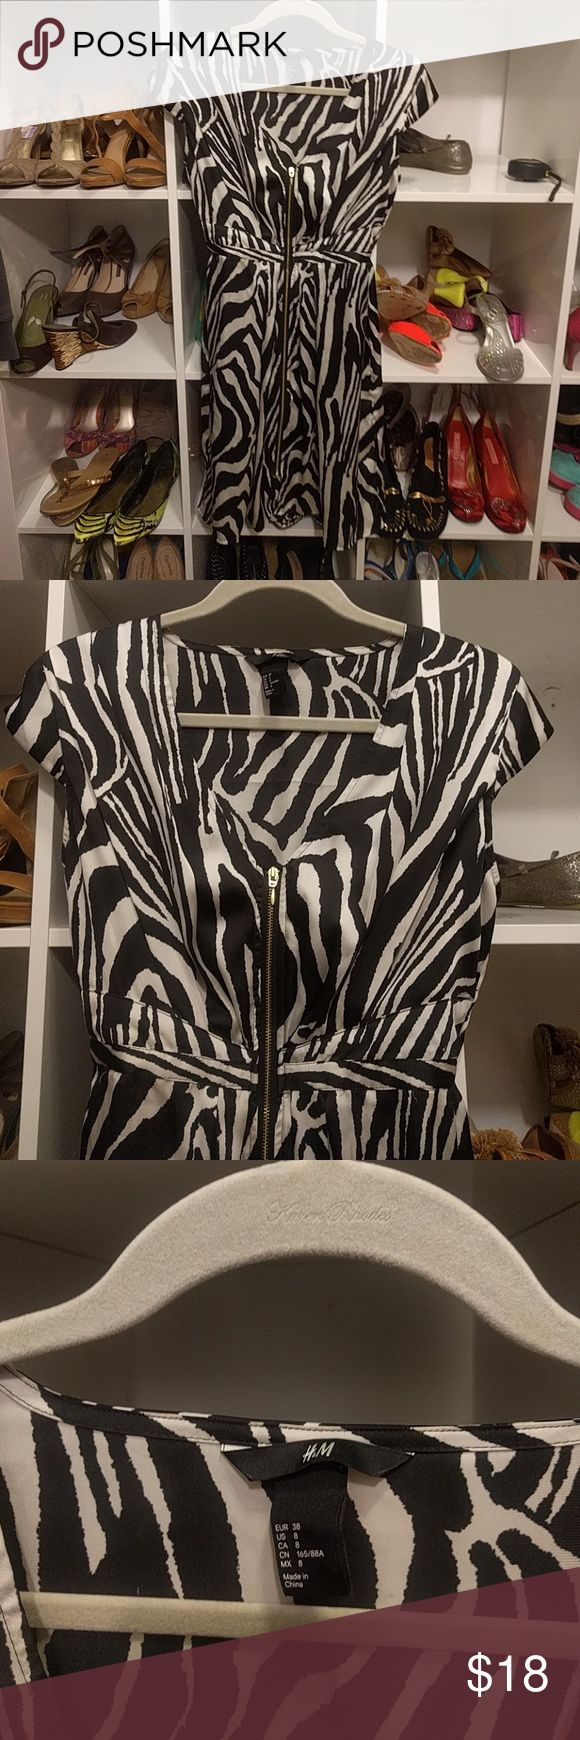 H&M SILKY ZEBRA zippered dress. Great waist line! This super chic zippered dress is light flowy silky and gives a fantastic waist line! Cap sleeve. Easy to wear. Doesn't wrinkle! Great for travel and cruise ships! 32.5 long H&M Dresses Mini